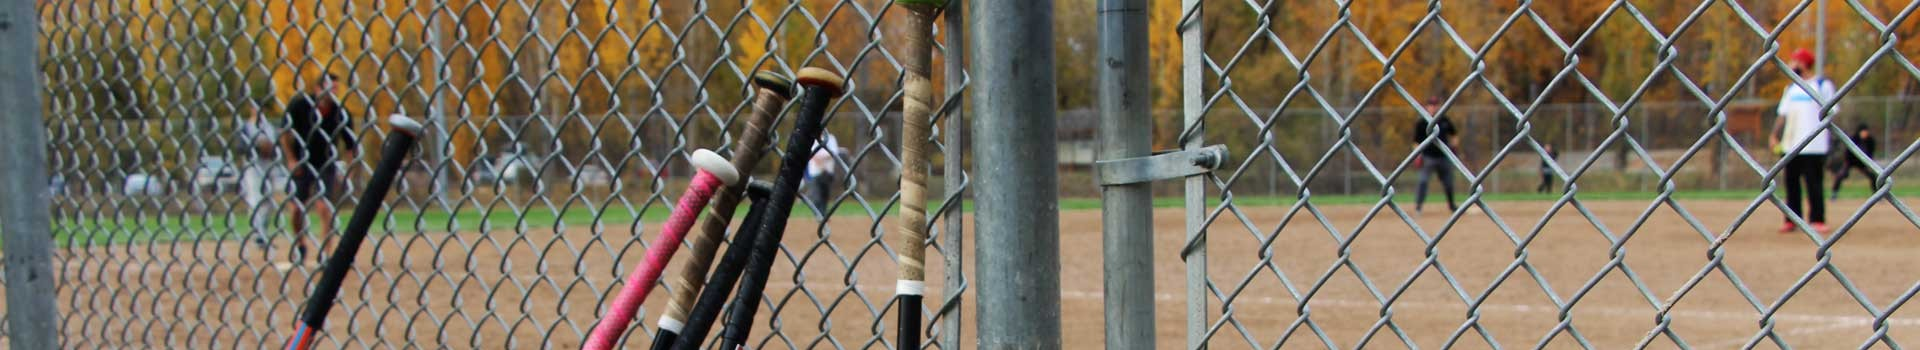 slo pitch players seen through fence